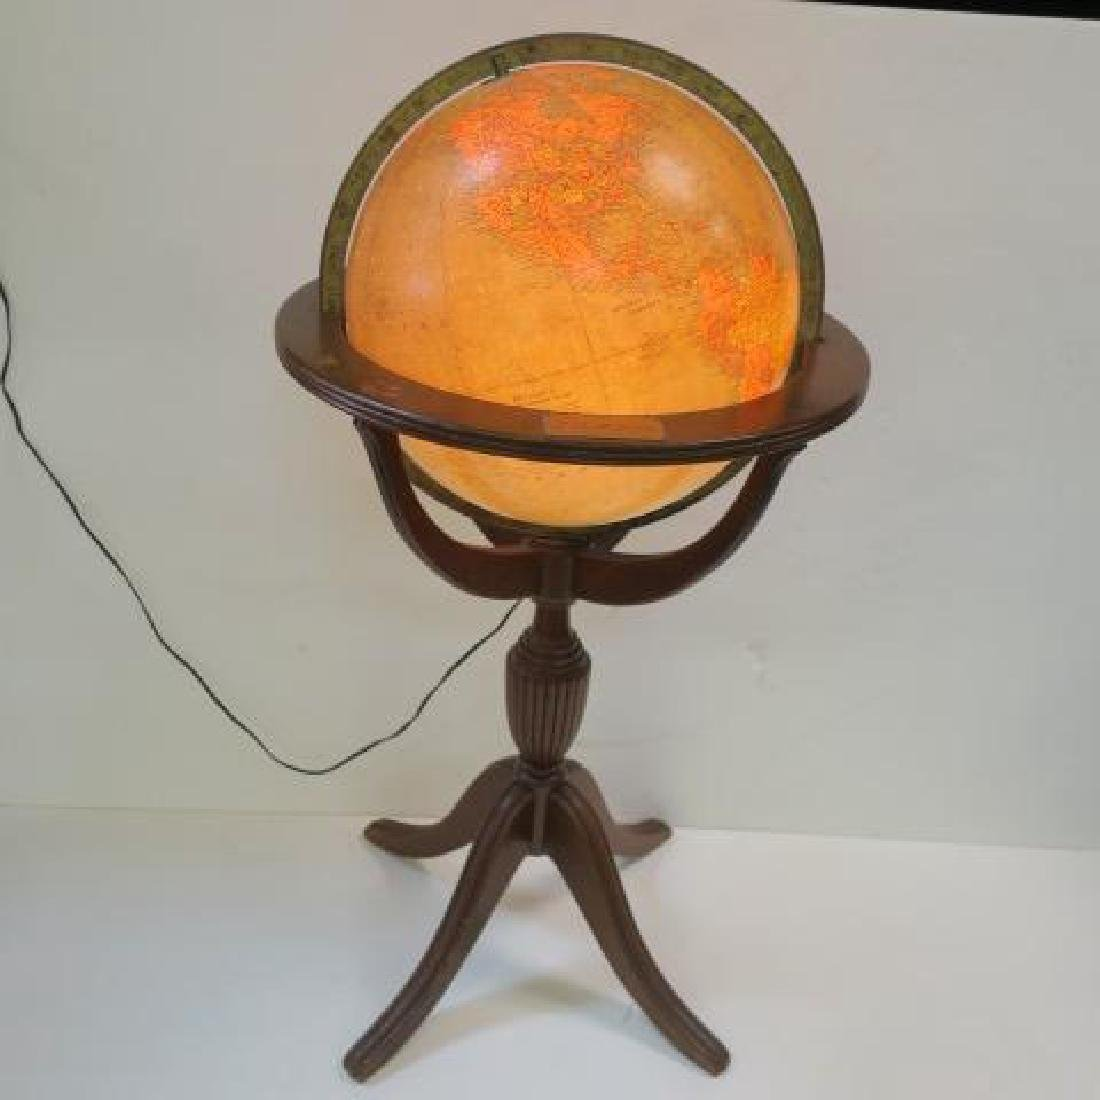 """REPLOGE 16"""" Lighted Library Globe with Stand, CA 1940:"""